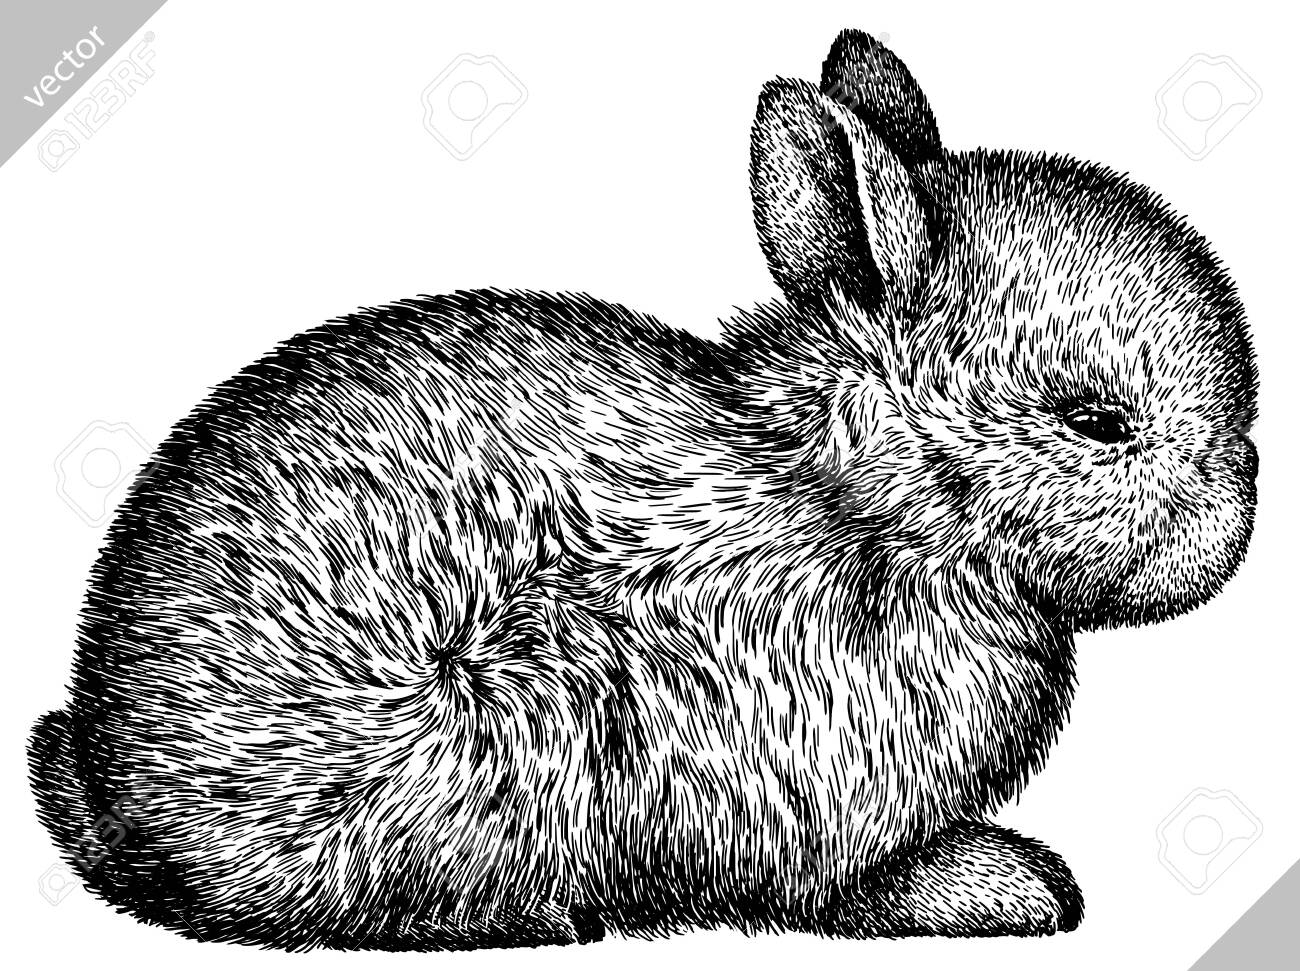 black and white engrave isolated rabbit vector illustration - 149163678